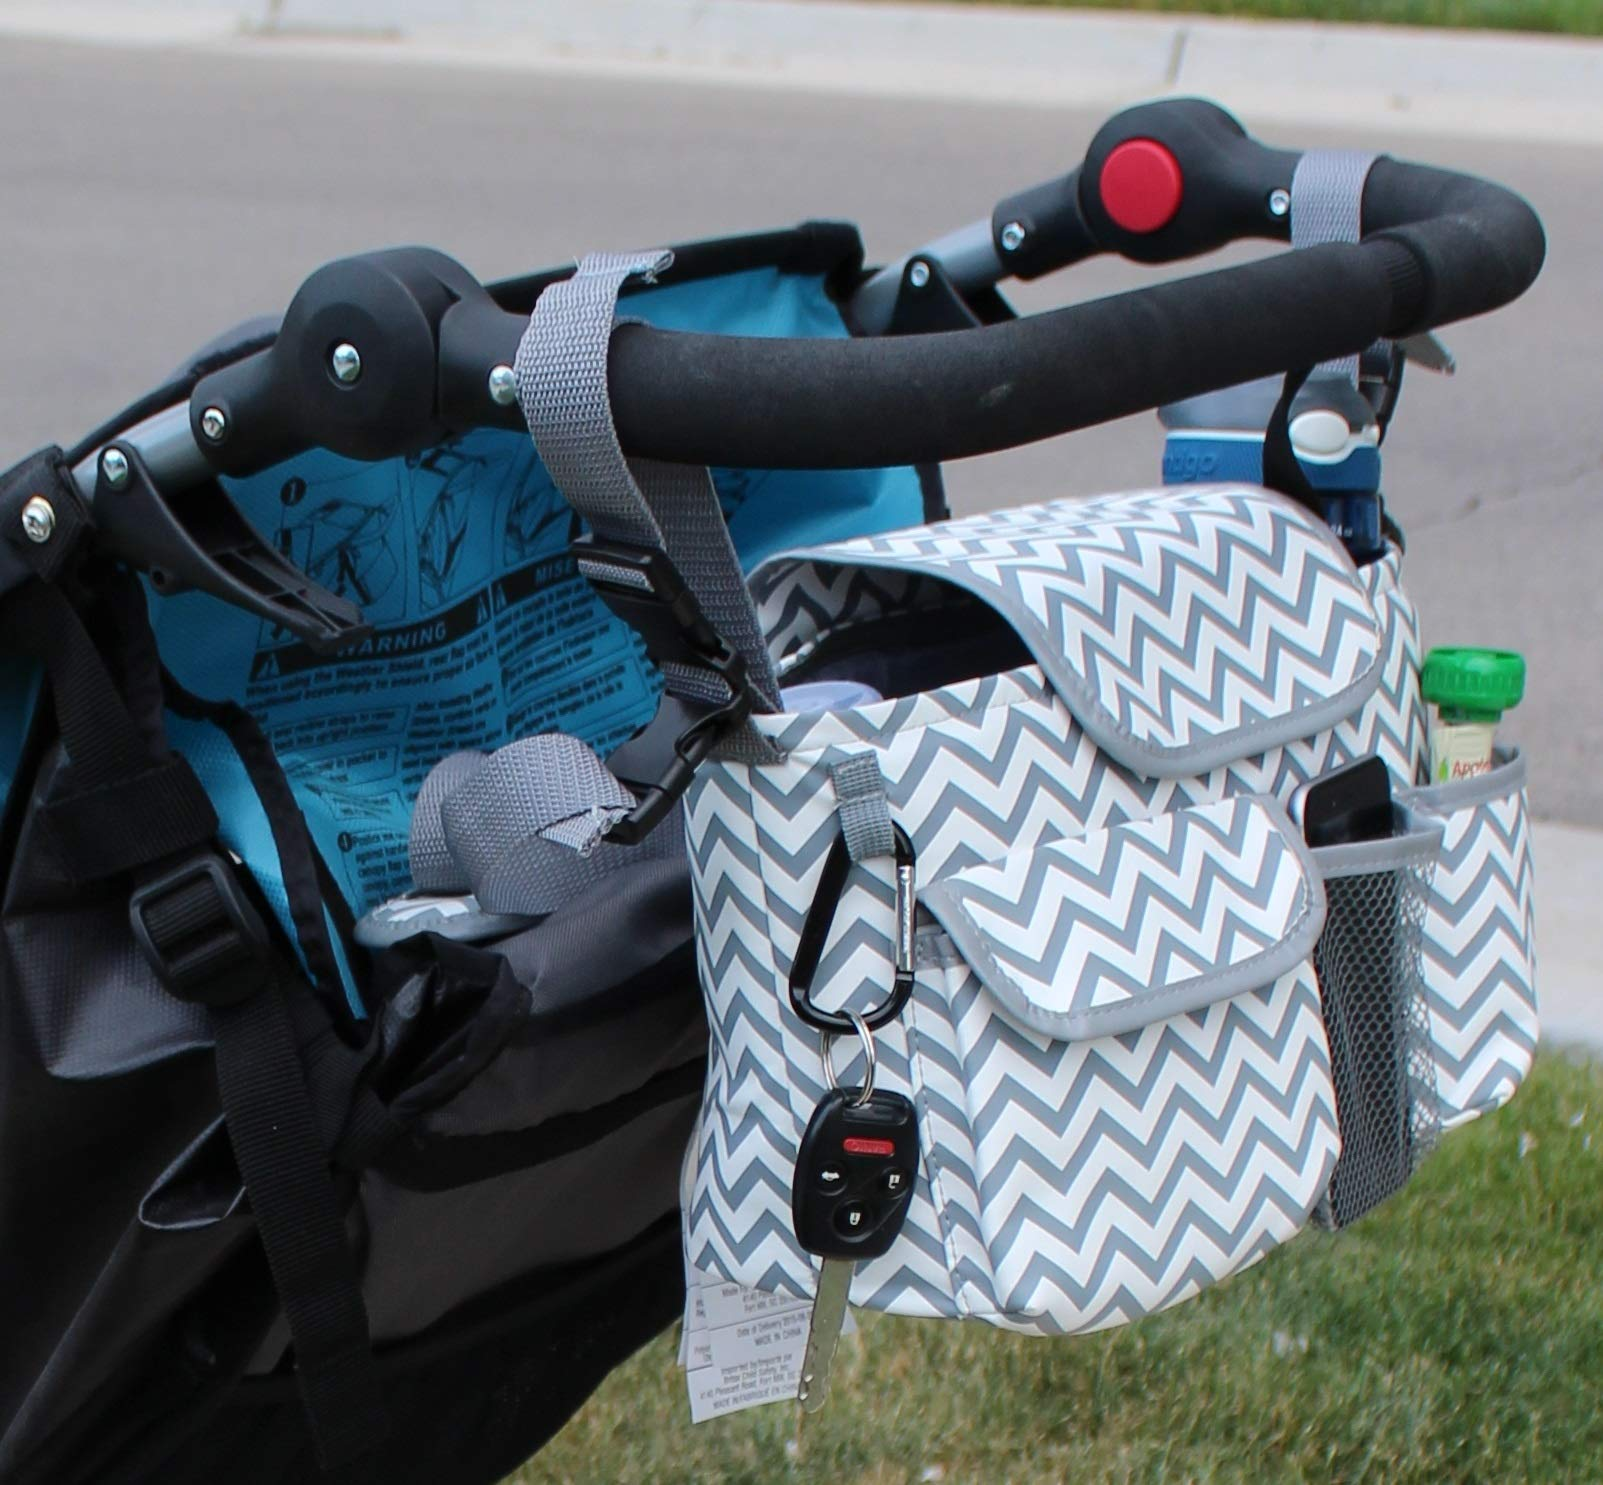 Universal Stroller Organizer with Cup Holders | Mini Diaper Bag | Easily Store Wallets, Keys, Bottles, Diapers, Wipes & Toys. | Premium Chevron Stroller Caddy by Travel in Sanity by Travel in Sanity (Image #1)